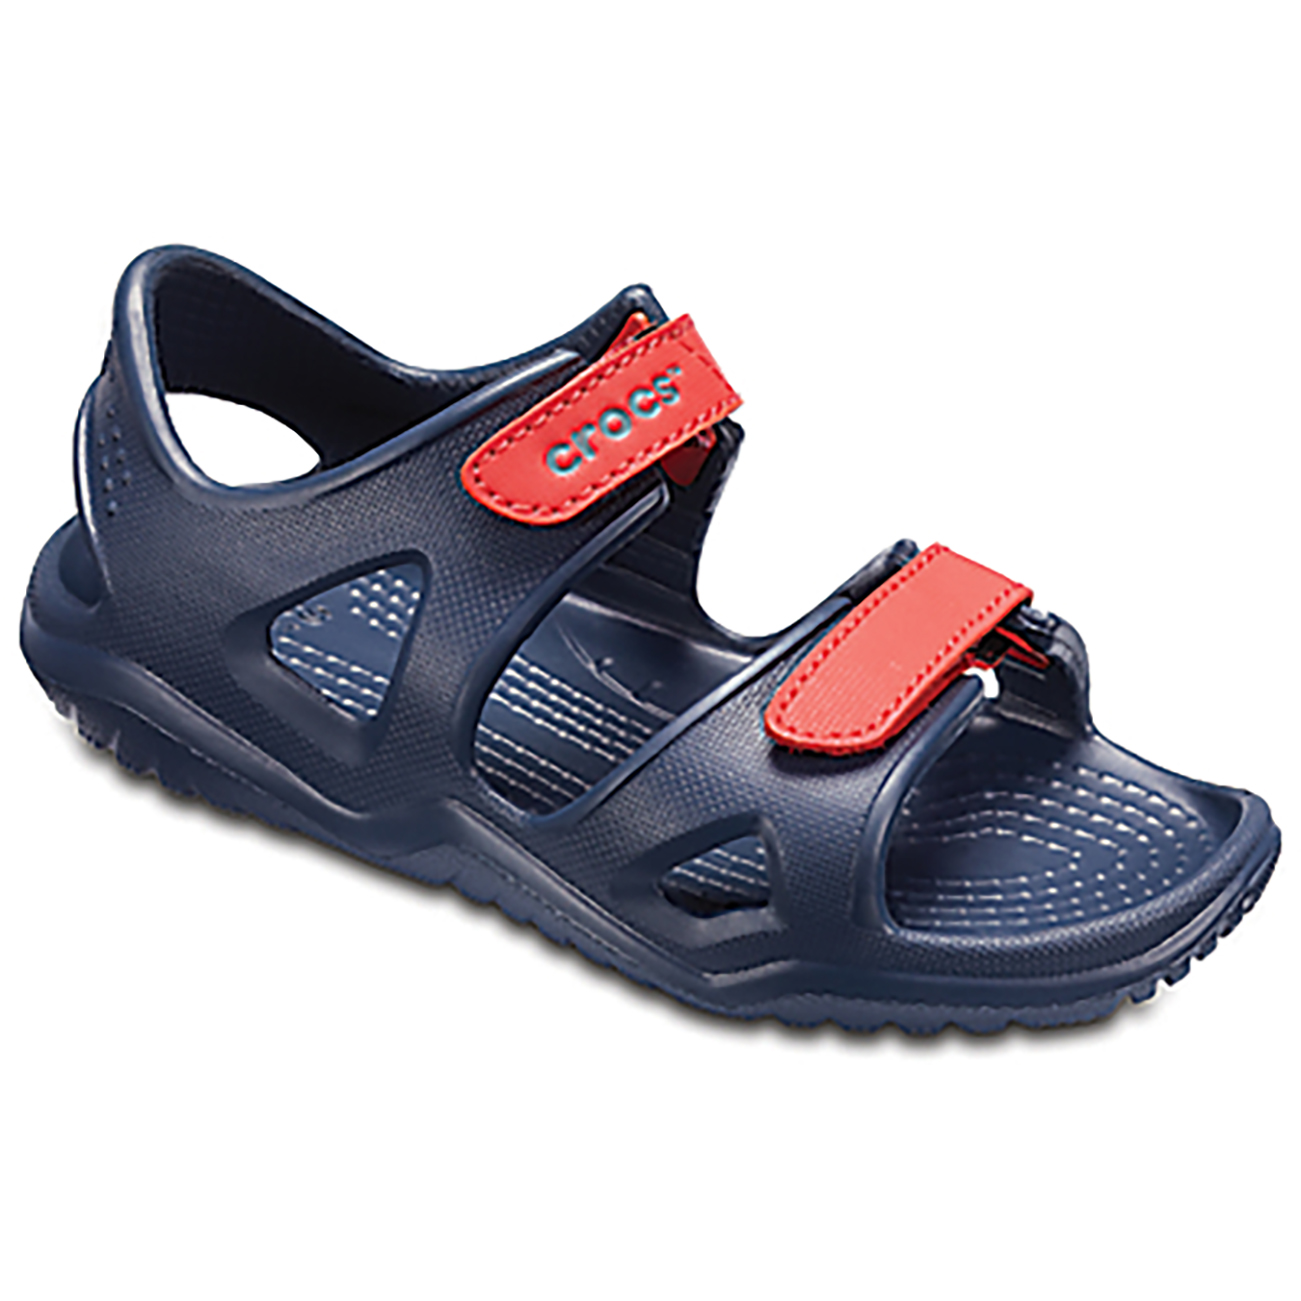 Unisex Kids Crocs Swiftwater River Sandal